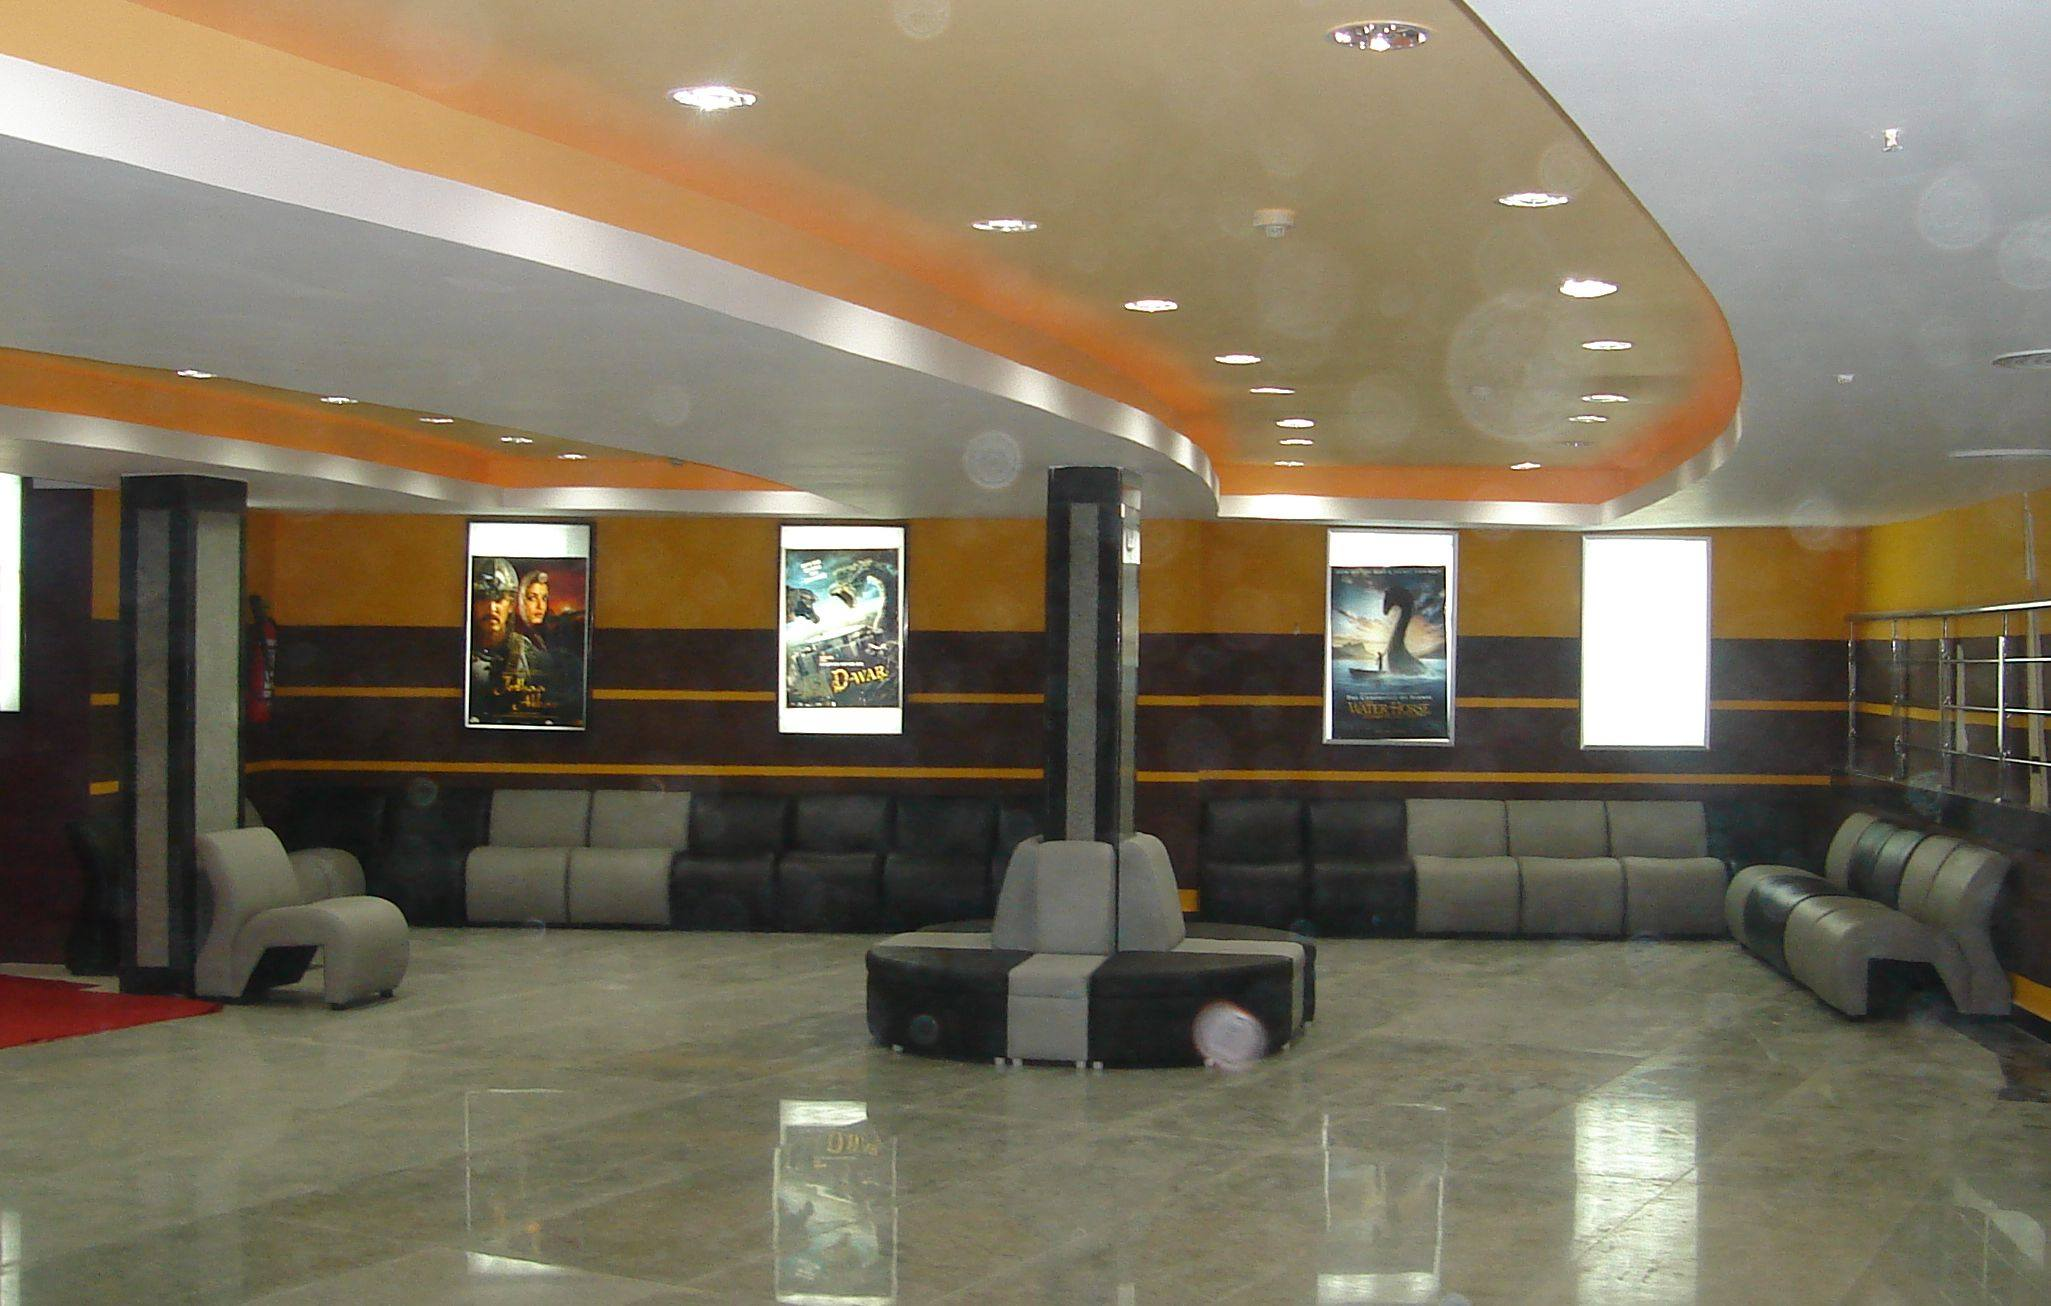 An Entertainment Centre for Sale in Kanathur, Chennai